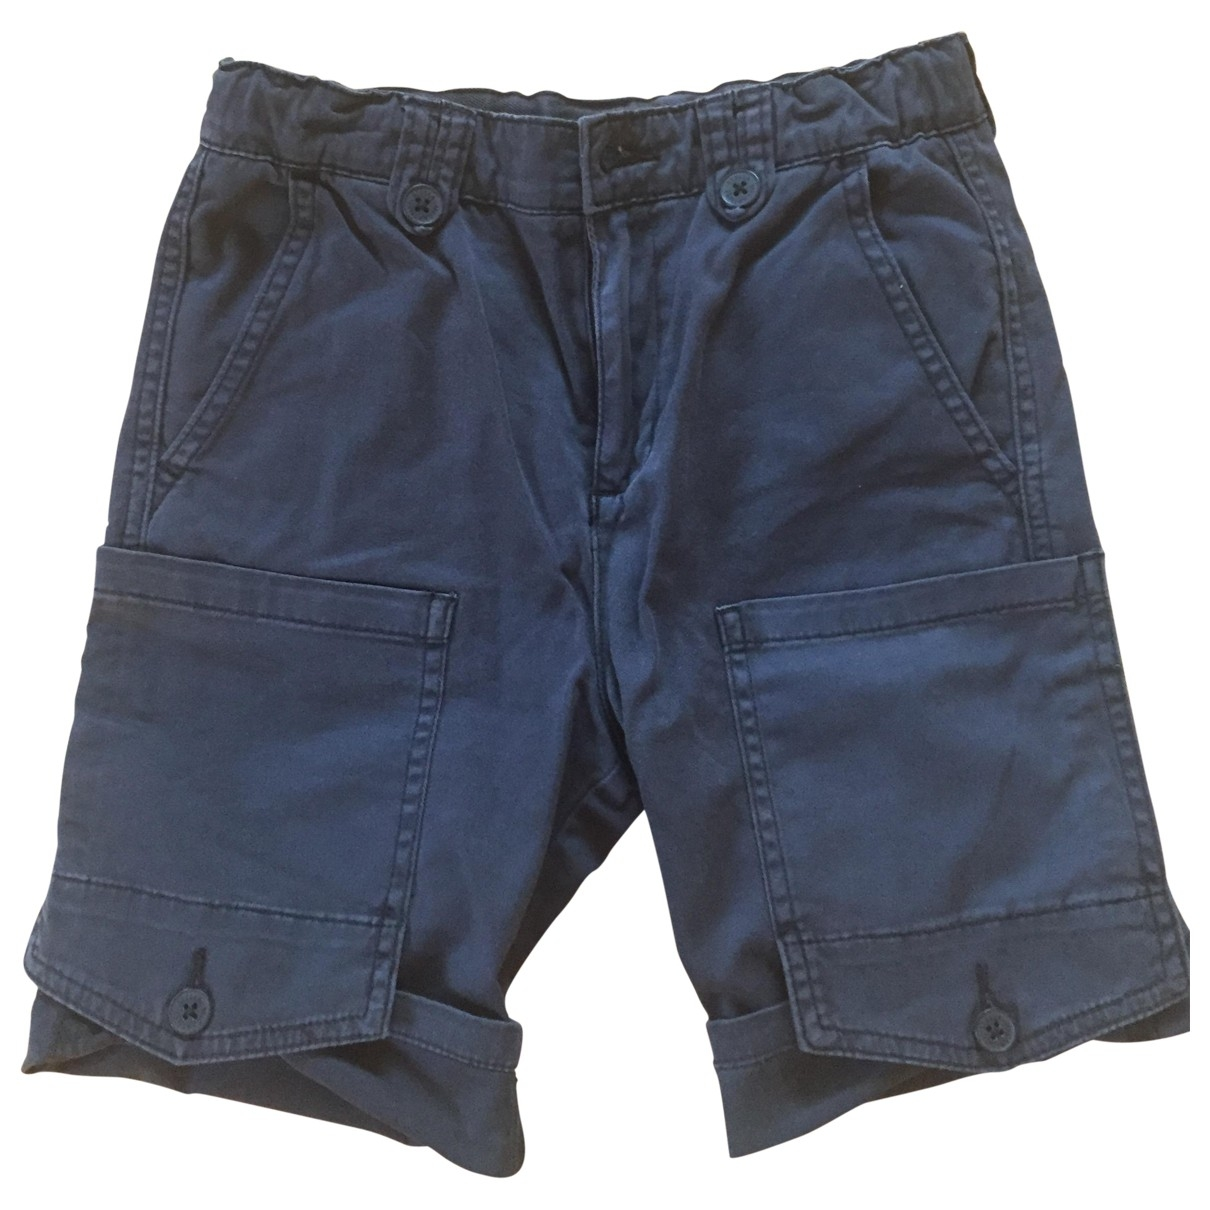 Stella Mccartney Kids \N Cotton Shorts for Kids 8 years - up to 128cm FR